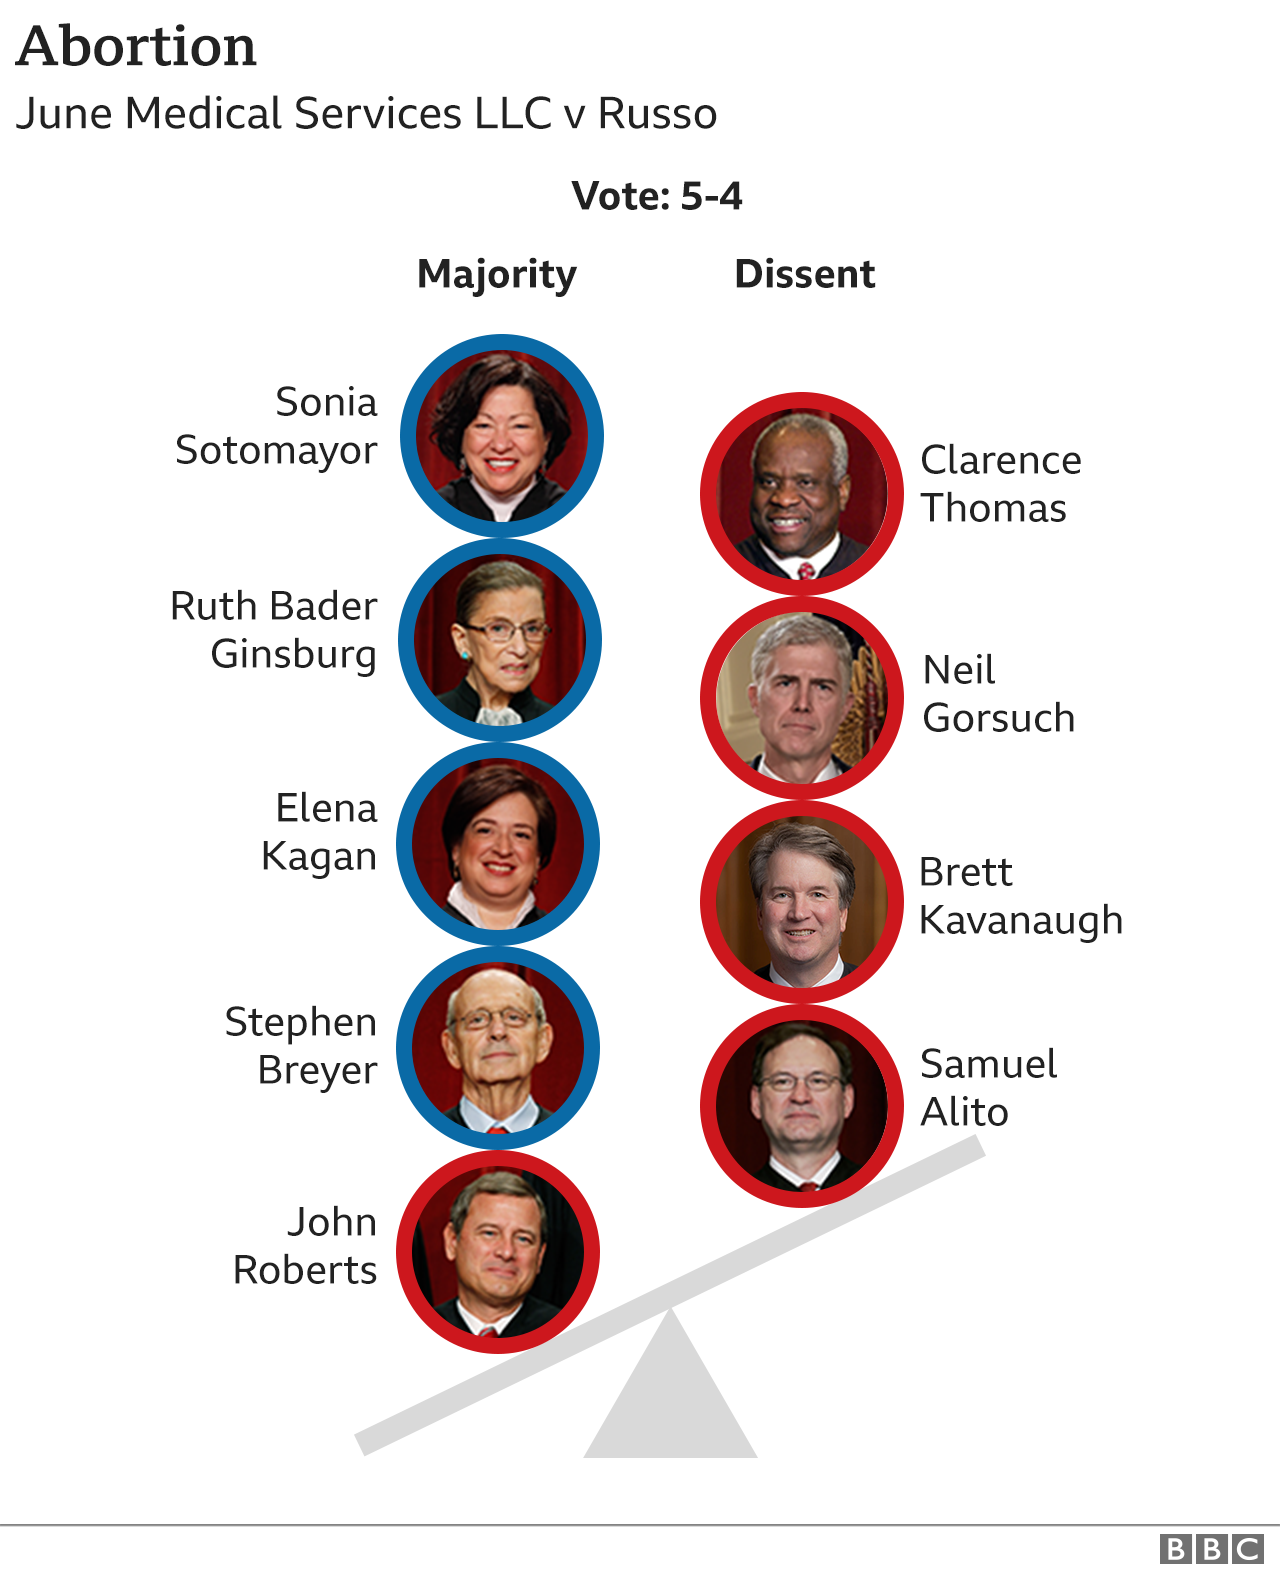 Graphic showing how justices voted on abortion